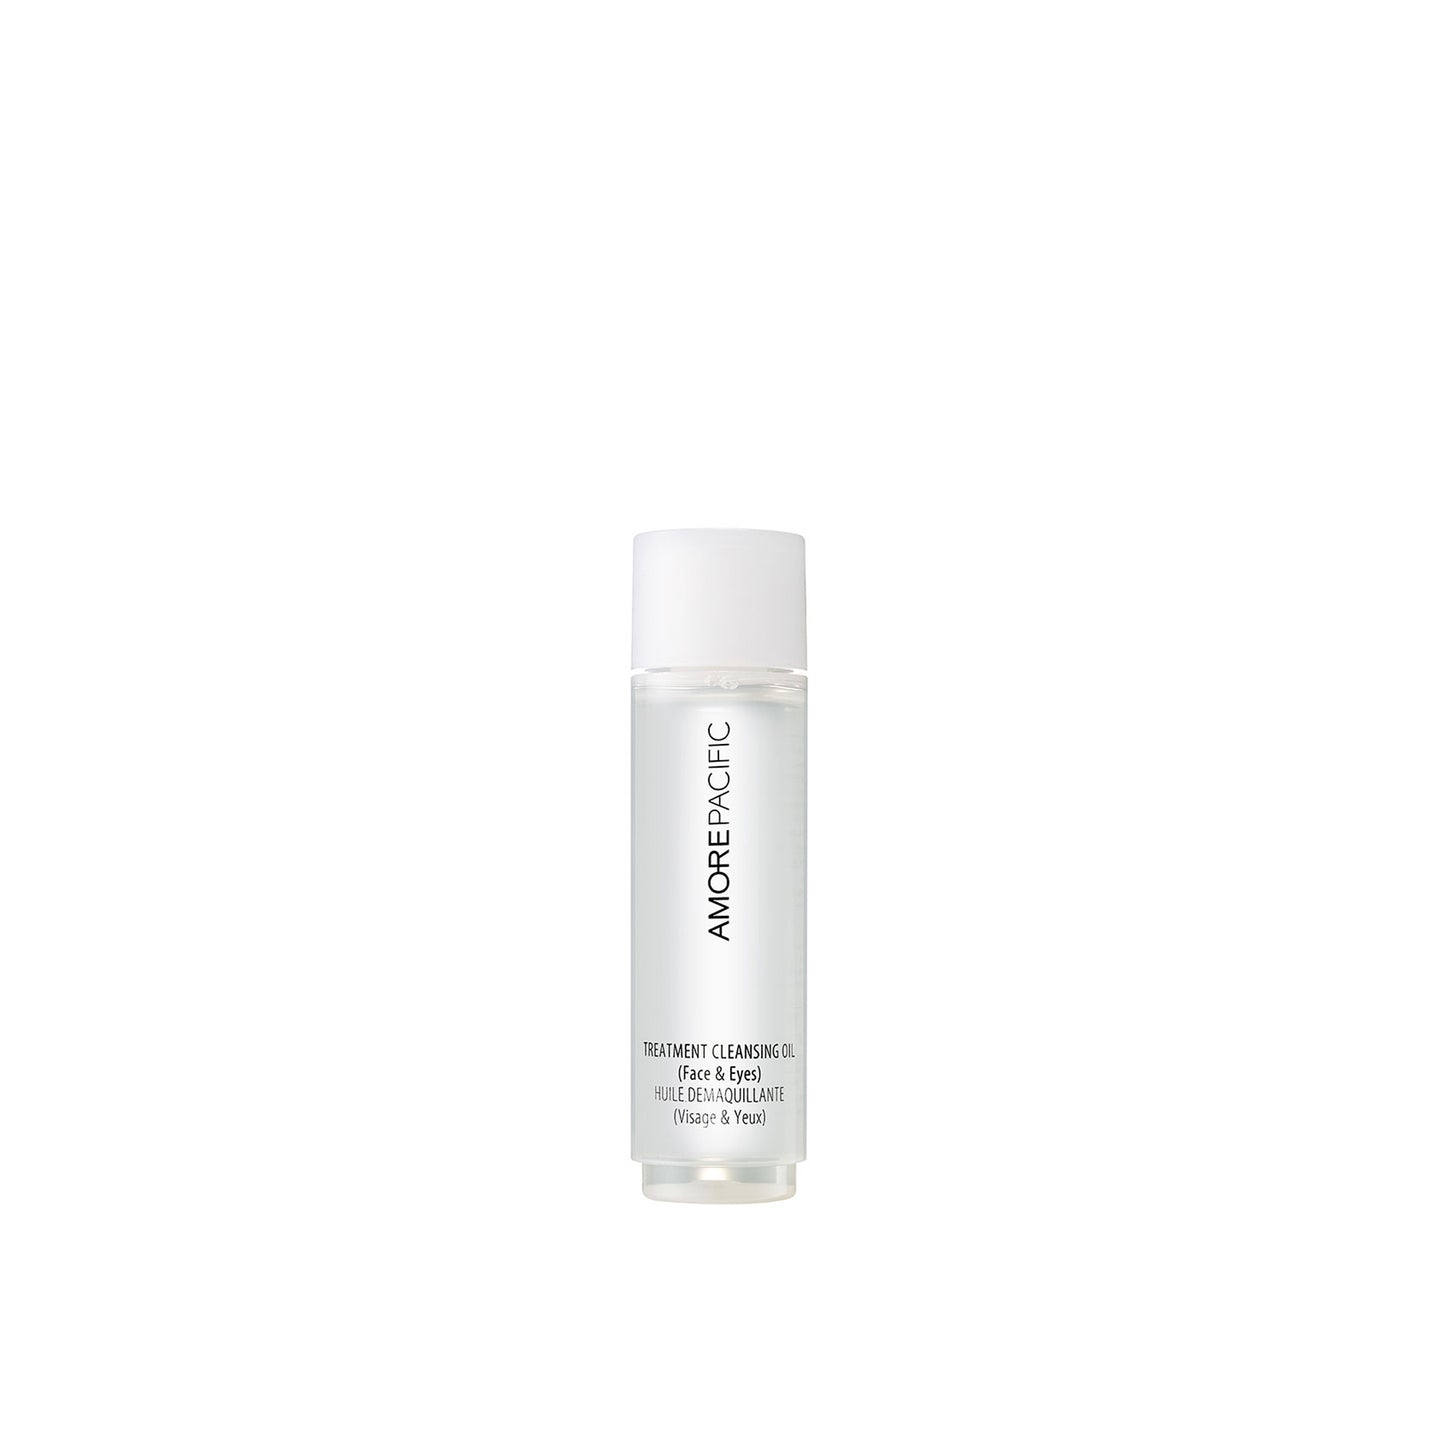 Treatment Cleansing Oil (30ml)